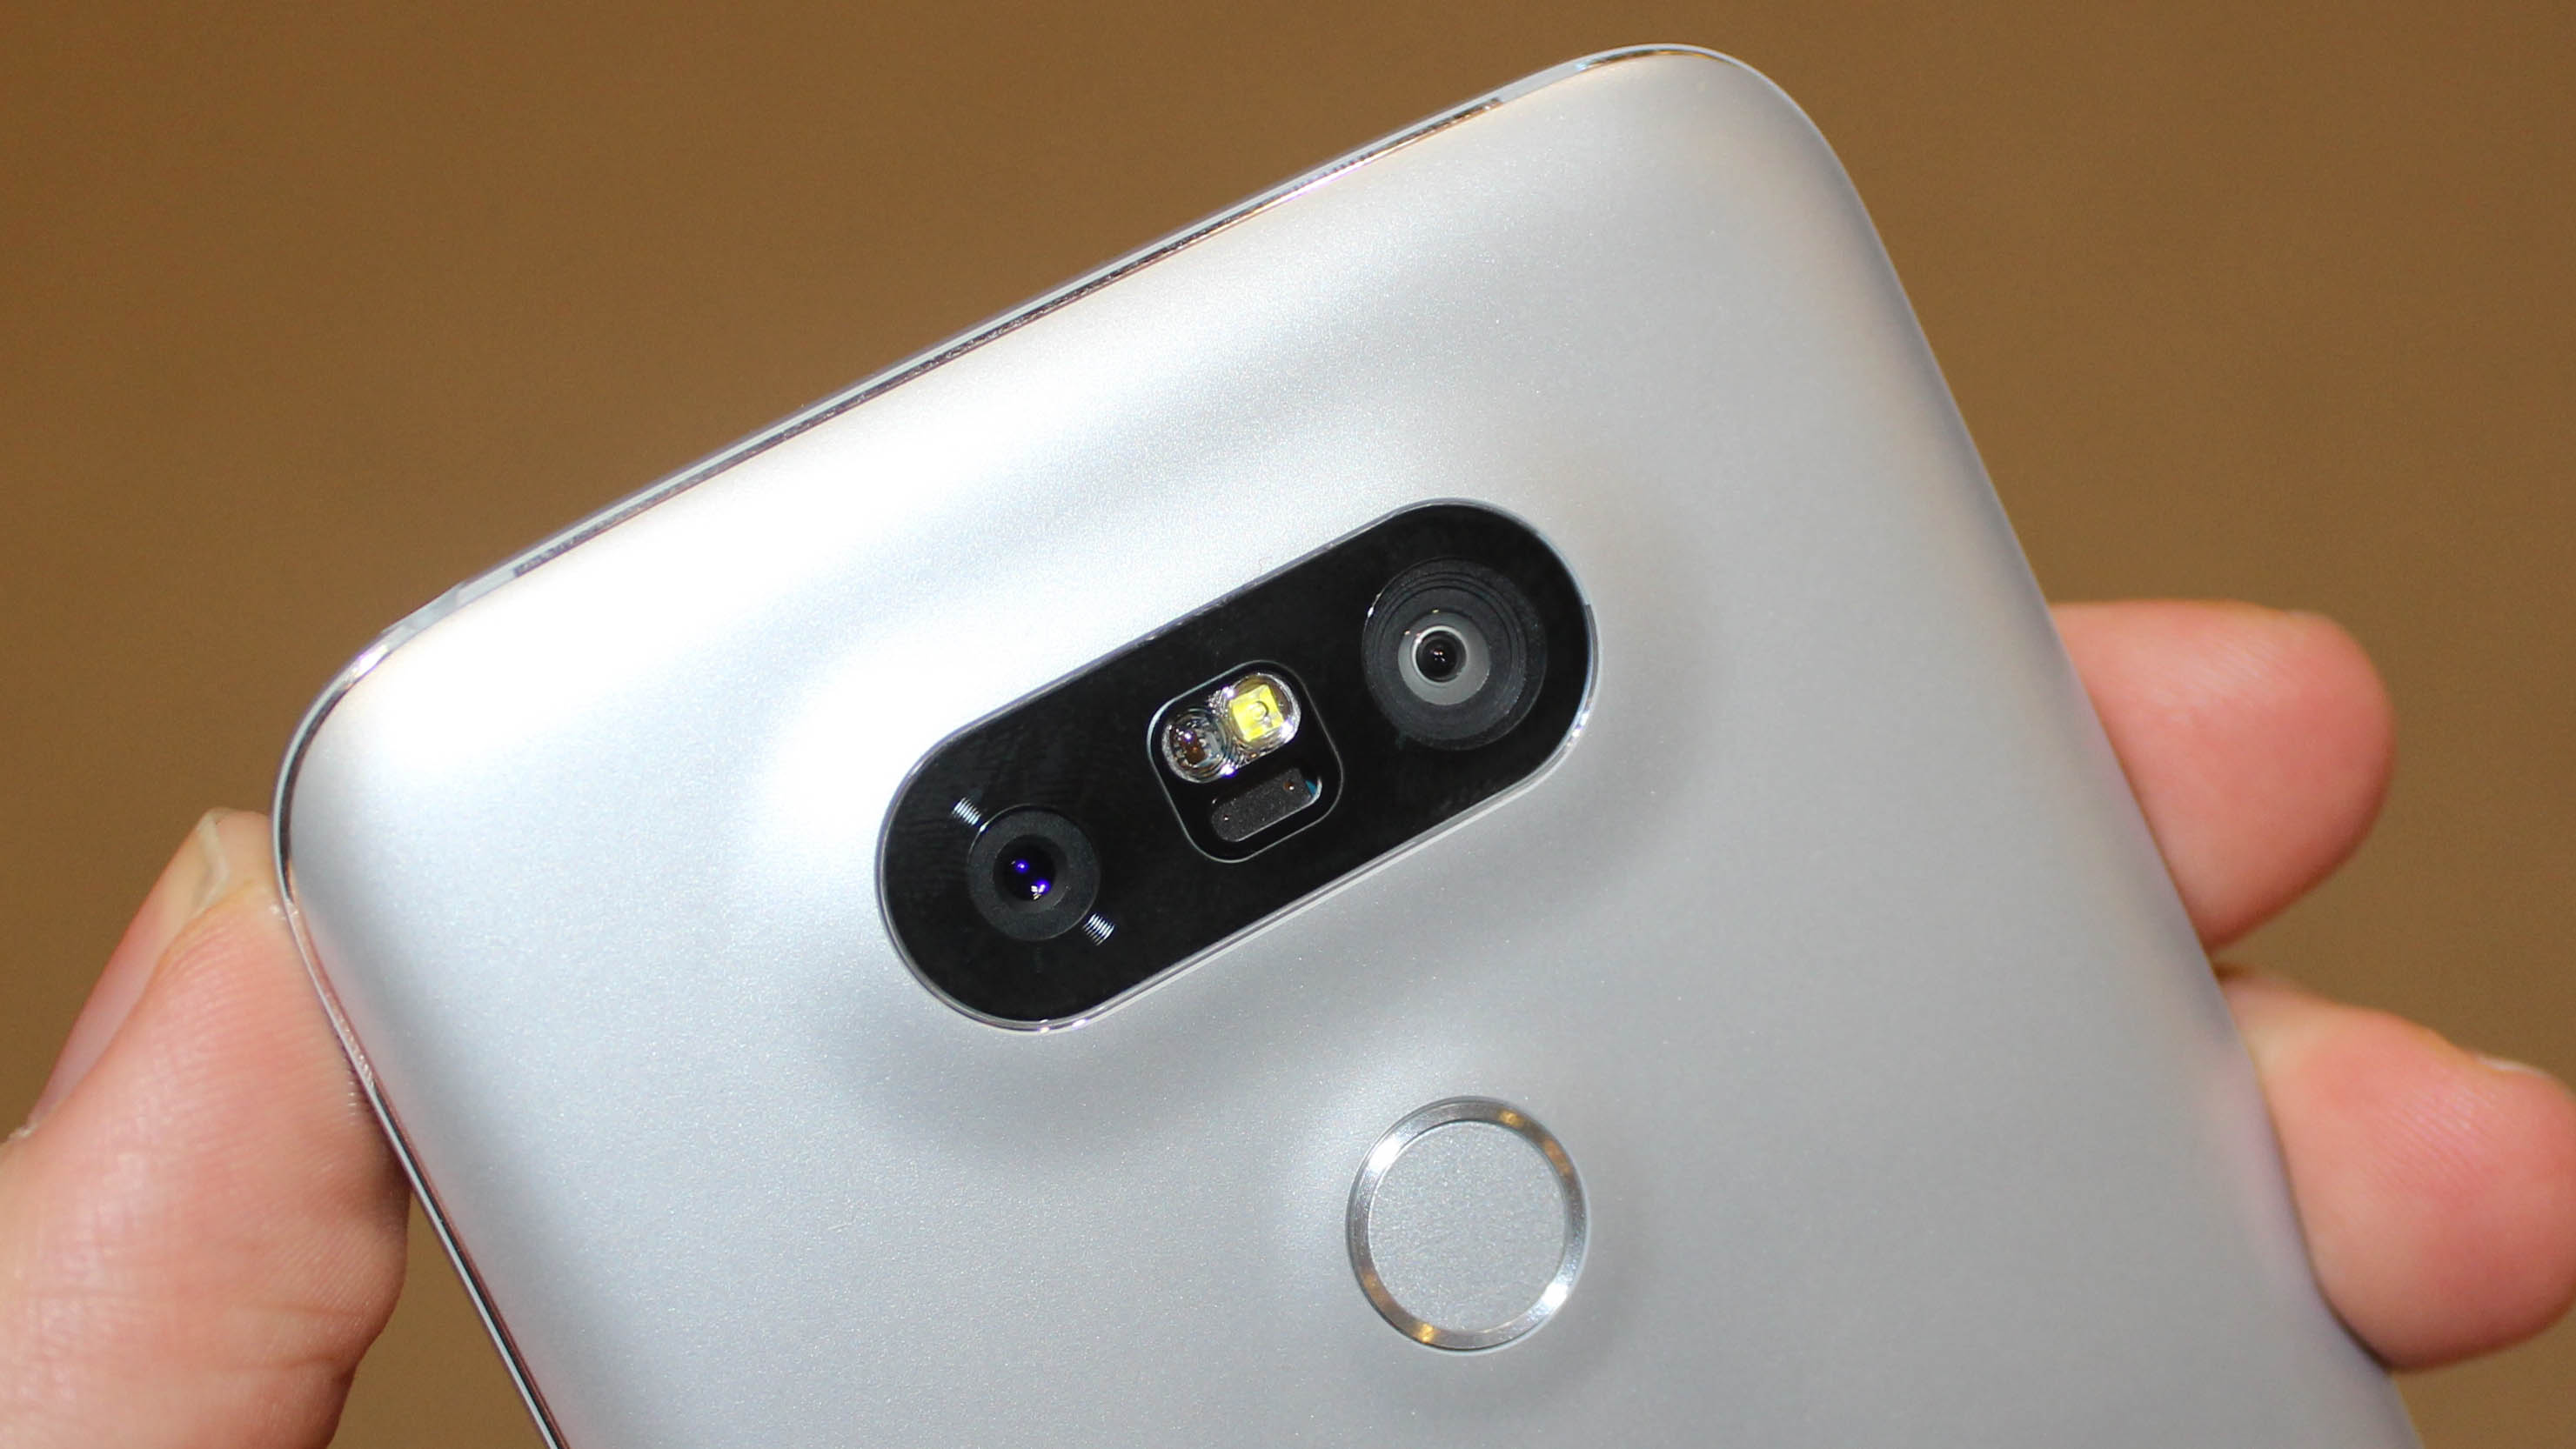 LG G6 release date, news and rumors - iBlogiBlog